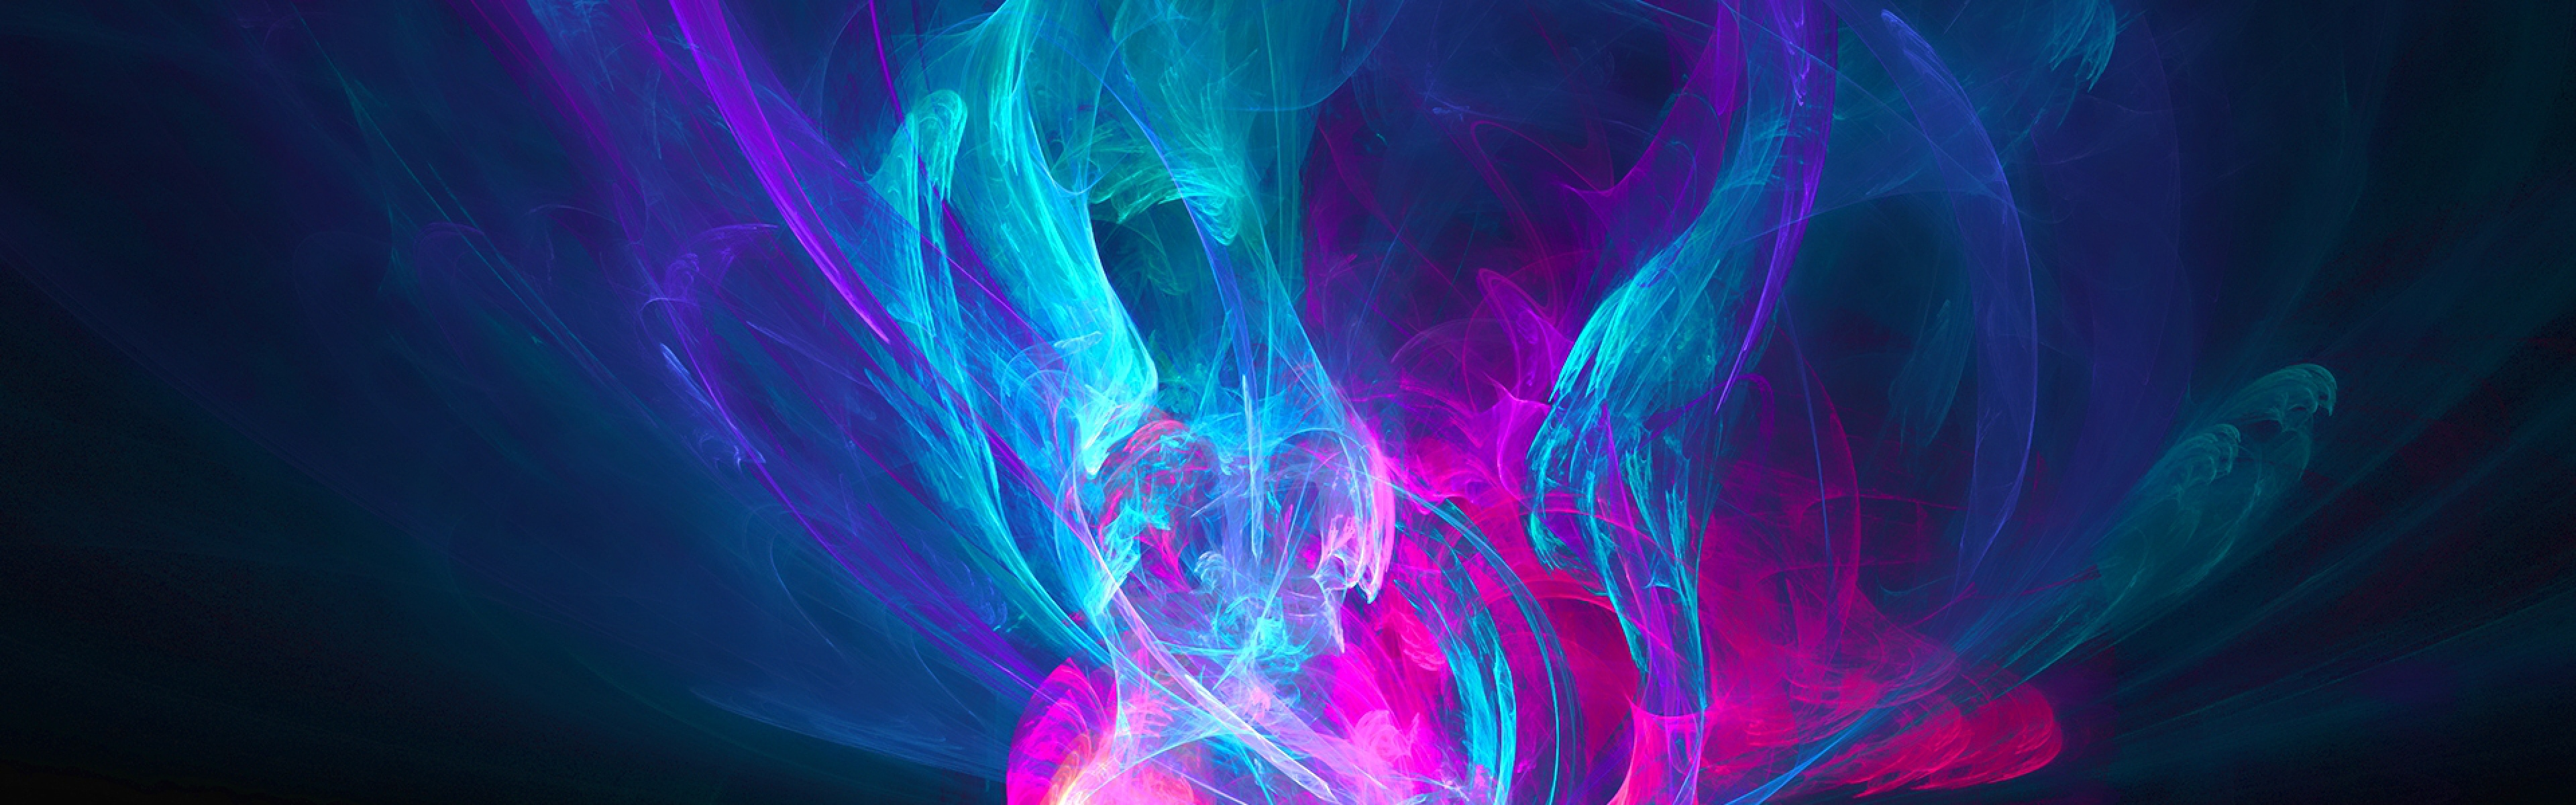 Free Download Pink Purple And Blue Wallpapers 3840x1200 For Your